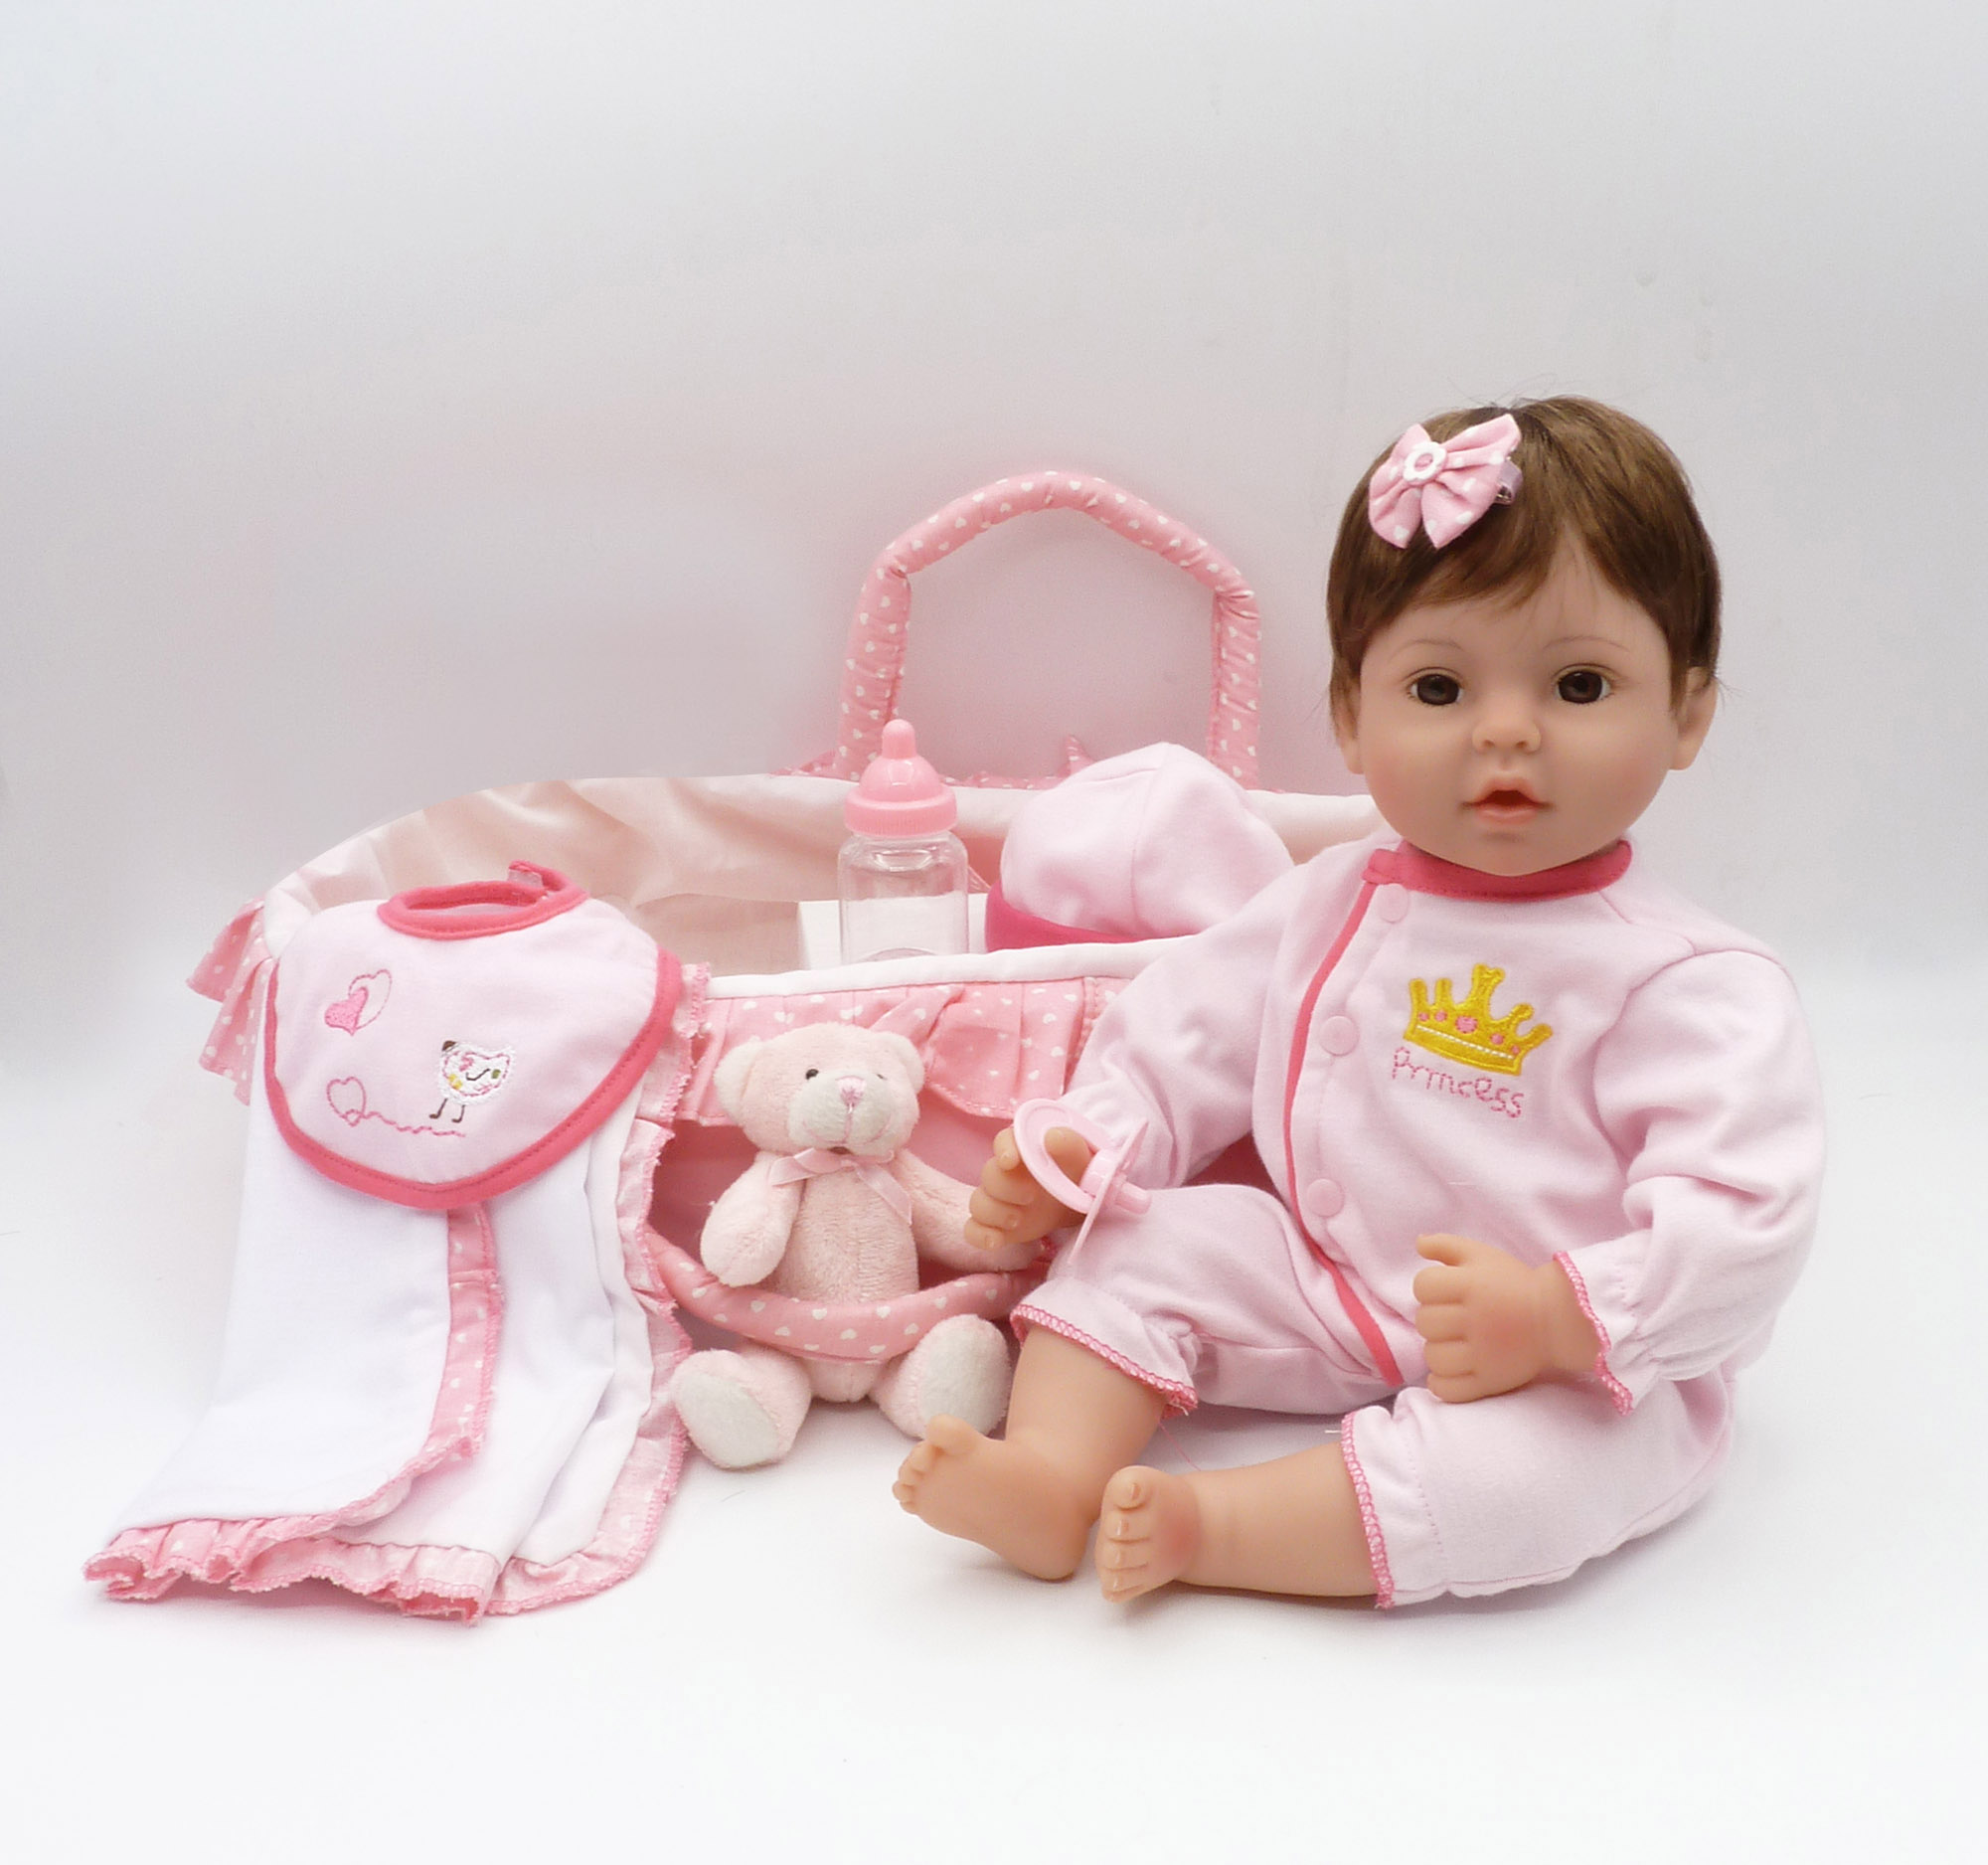 16 Inches Reborn Doll 40cm Sleeping Silicone Dolls with Basket Handmade Lifelike Baby Fashion Gift for Kids Toys for Boy Girl